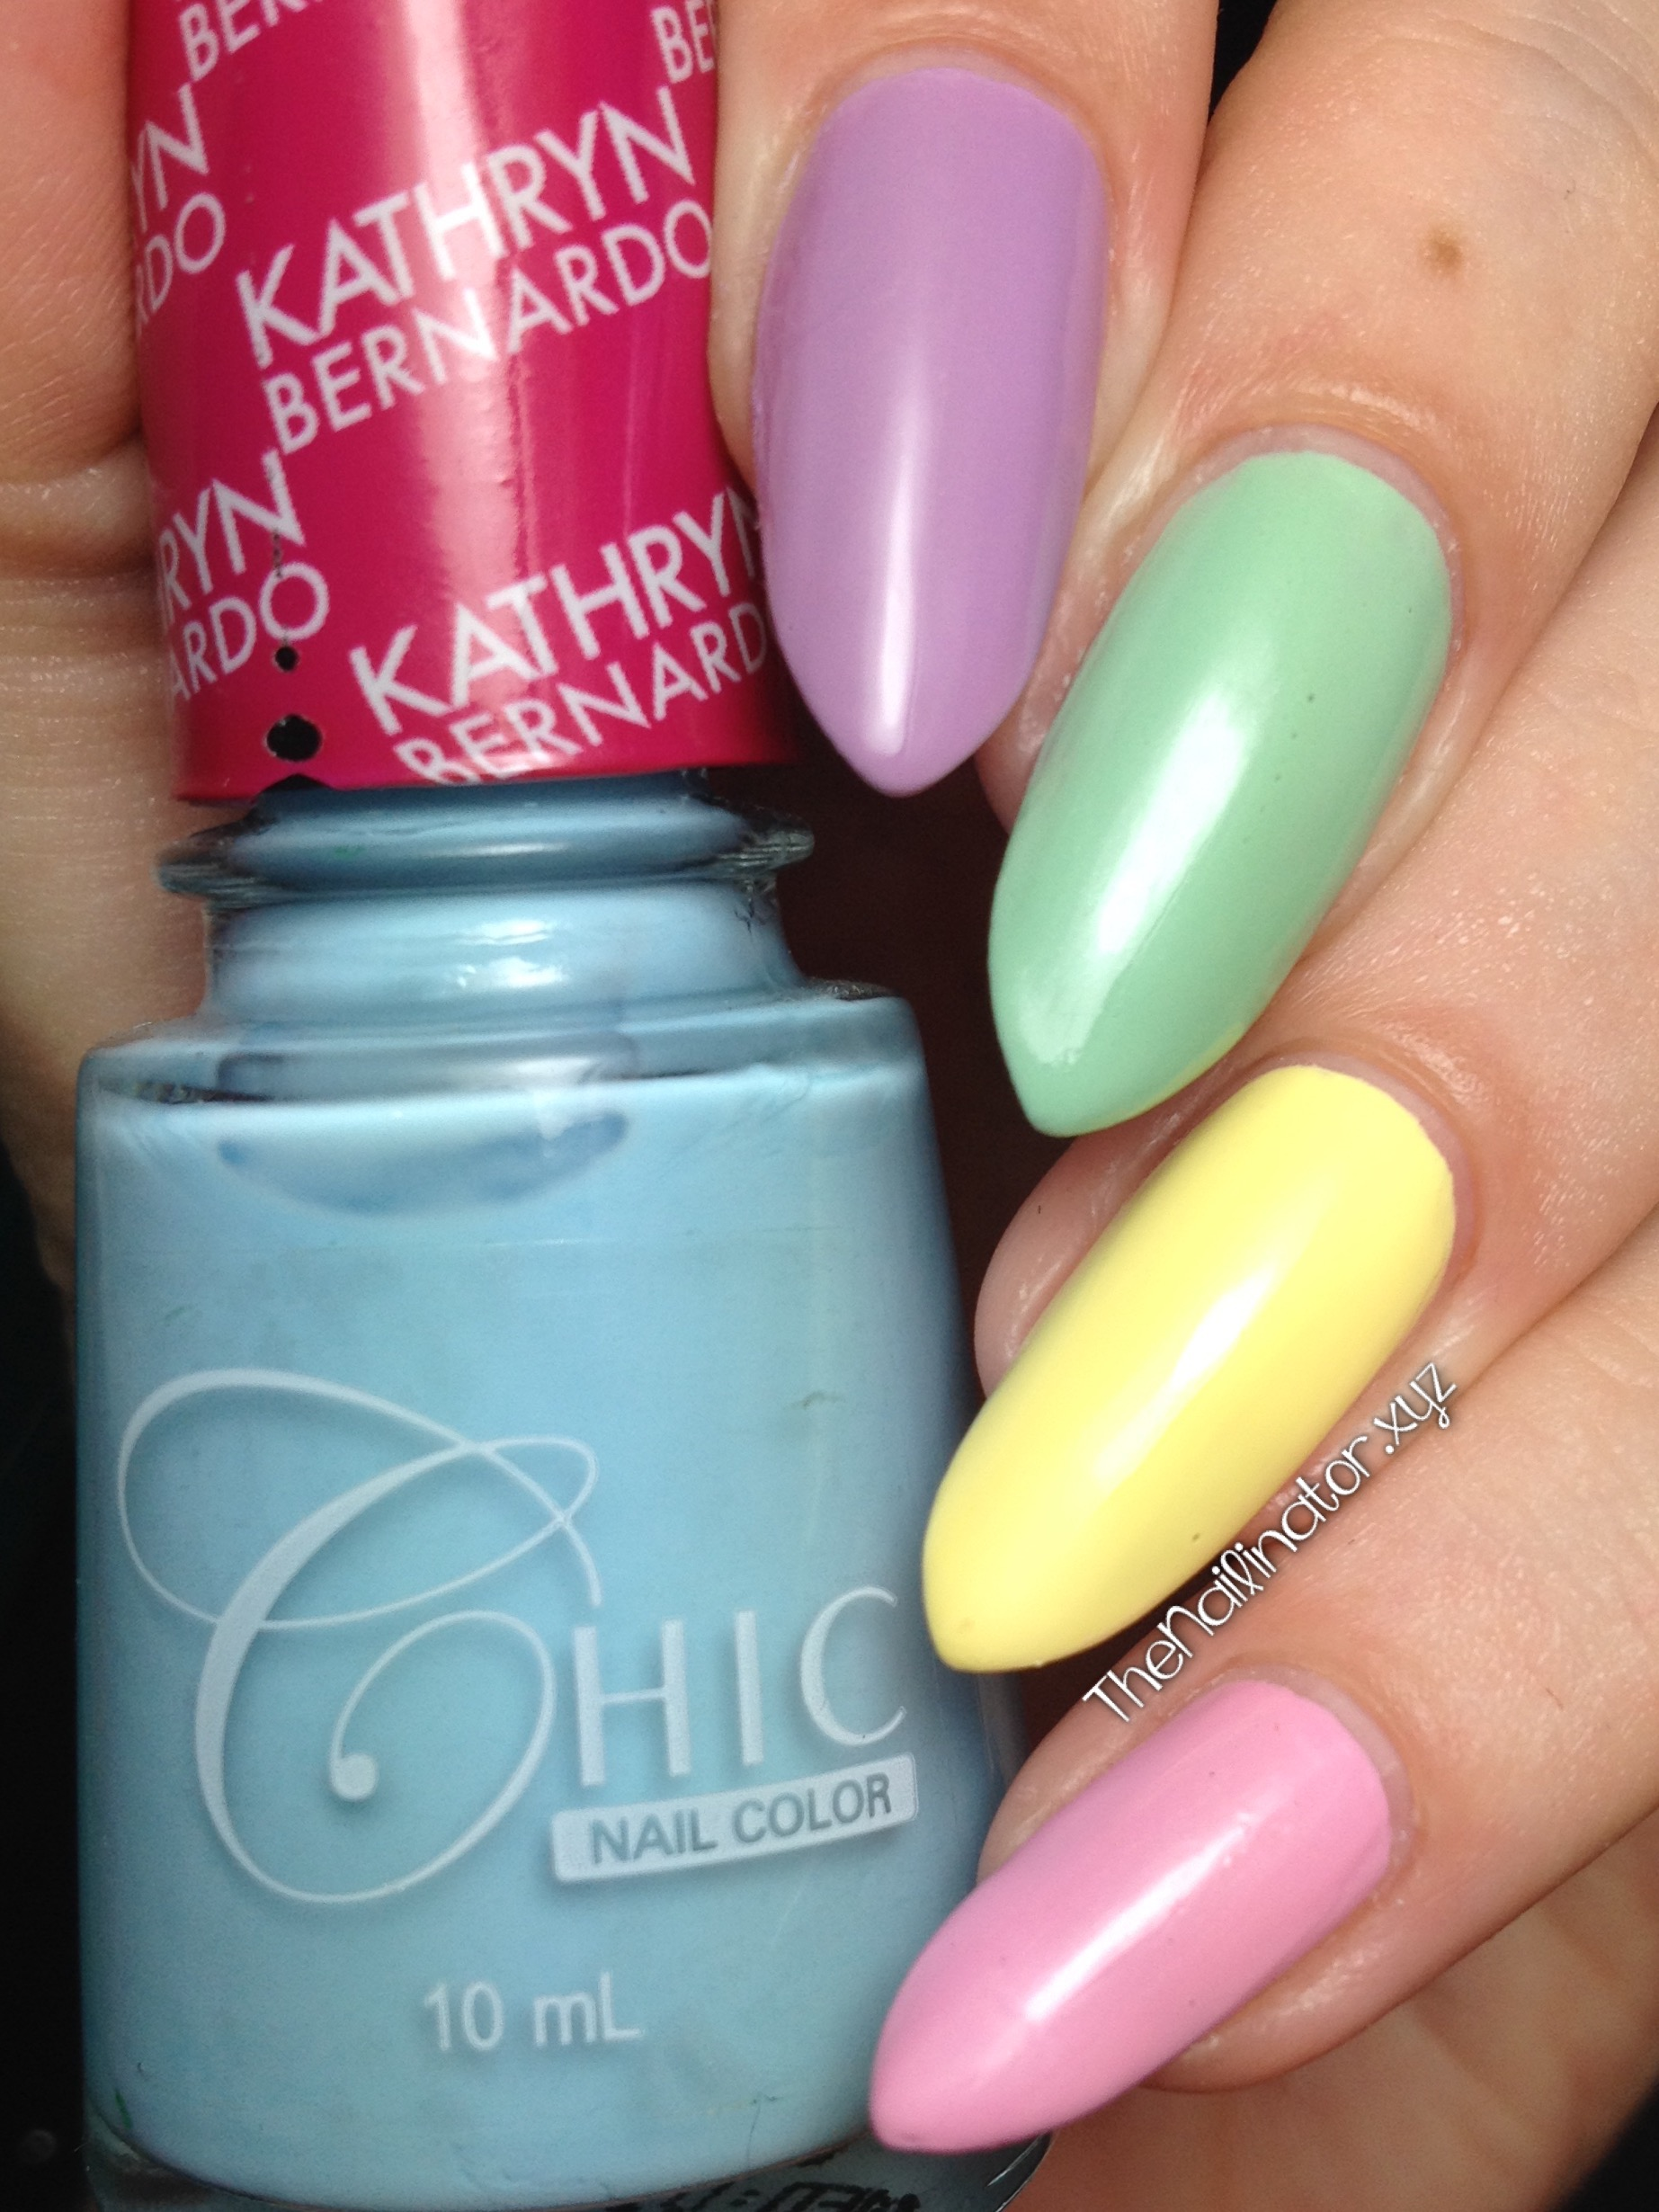 Chic Nail Polish Colors Philippines Papillon Day Spa